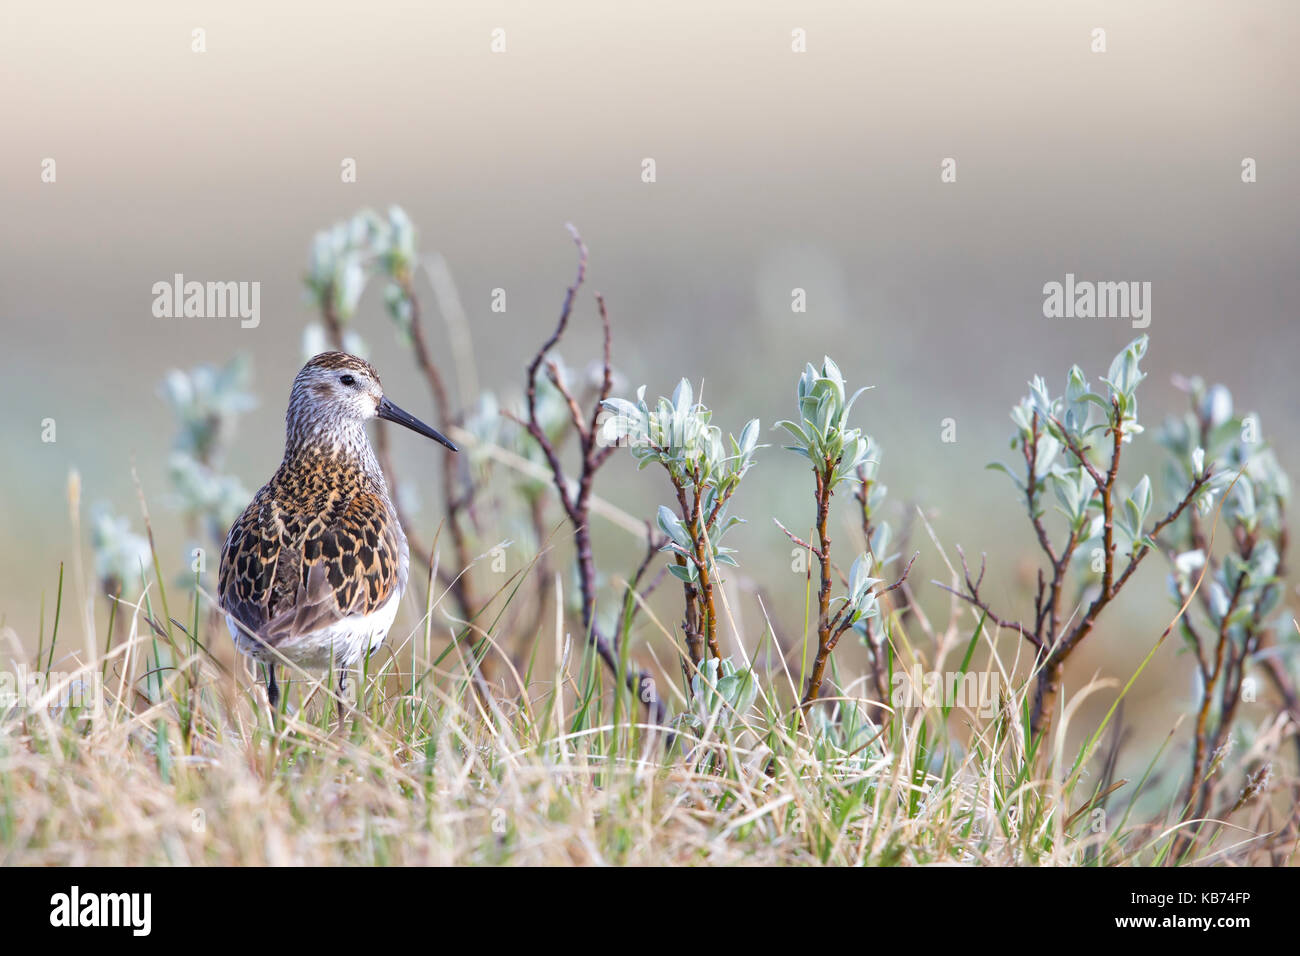 Dunlin (Calidris Alpina) standing in vegetation, Norway, Sor-Trondelag - Stock Image